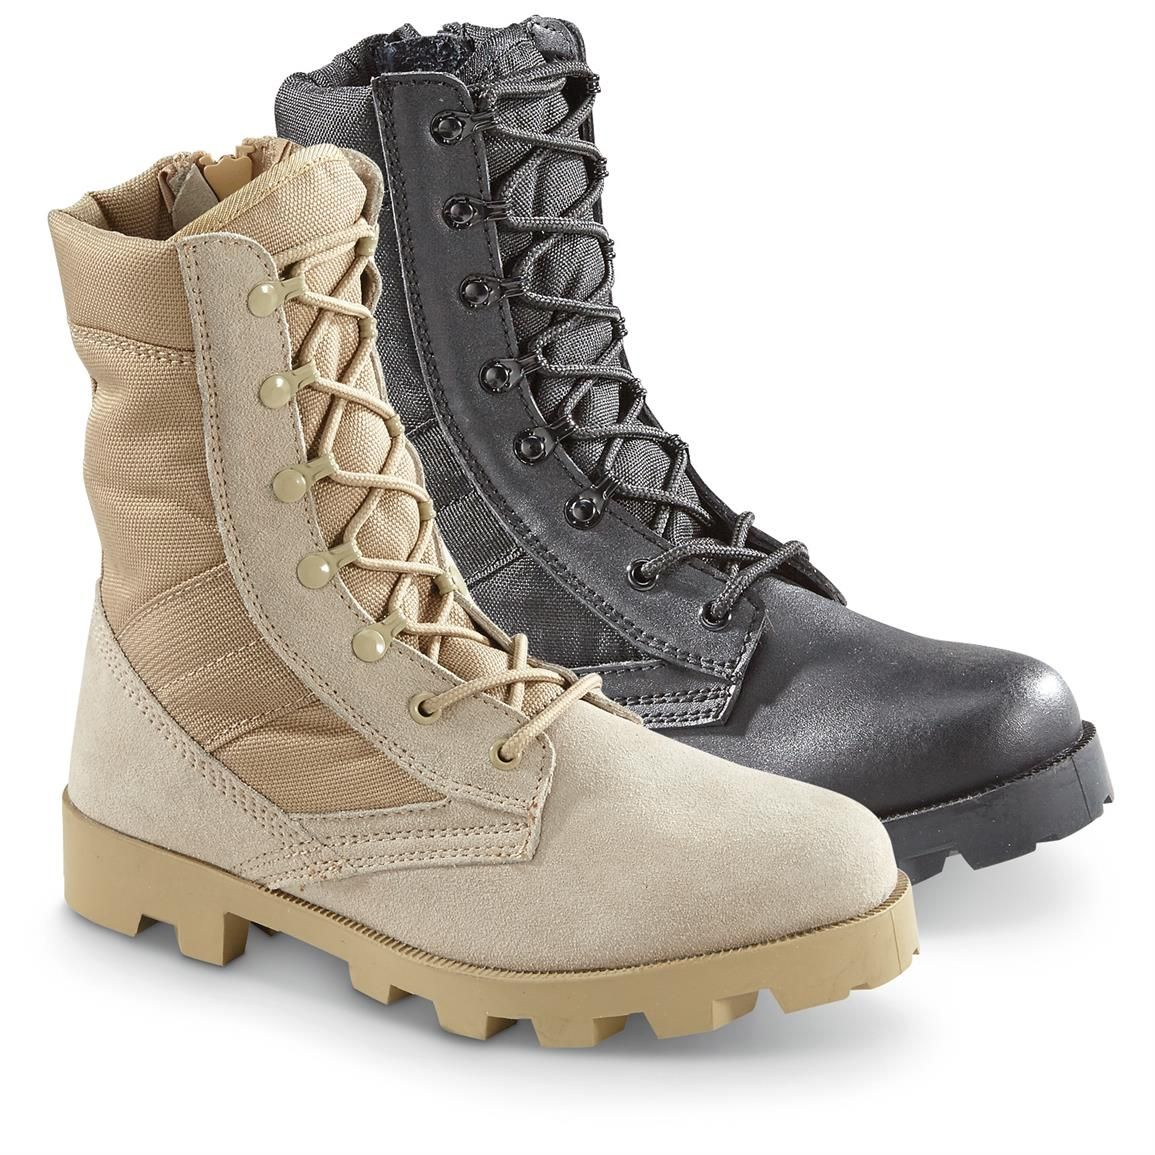 Discount Boots For Men